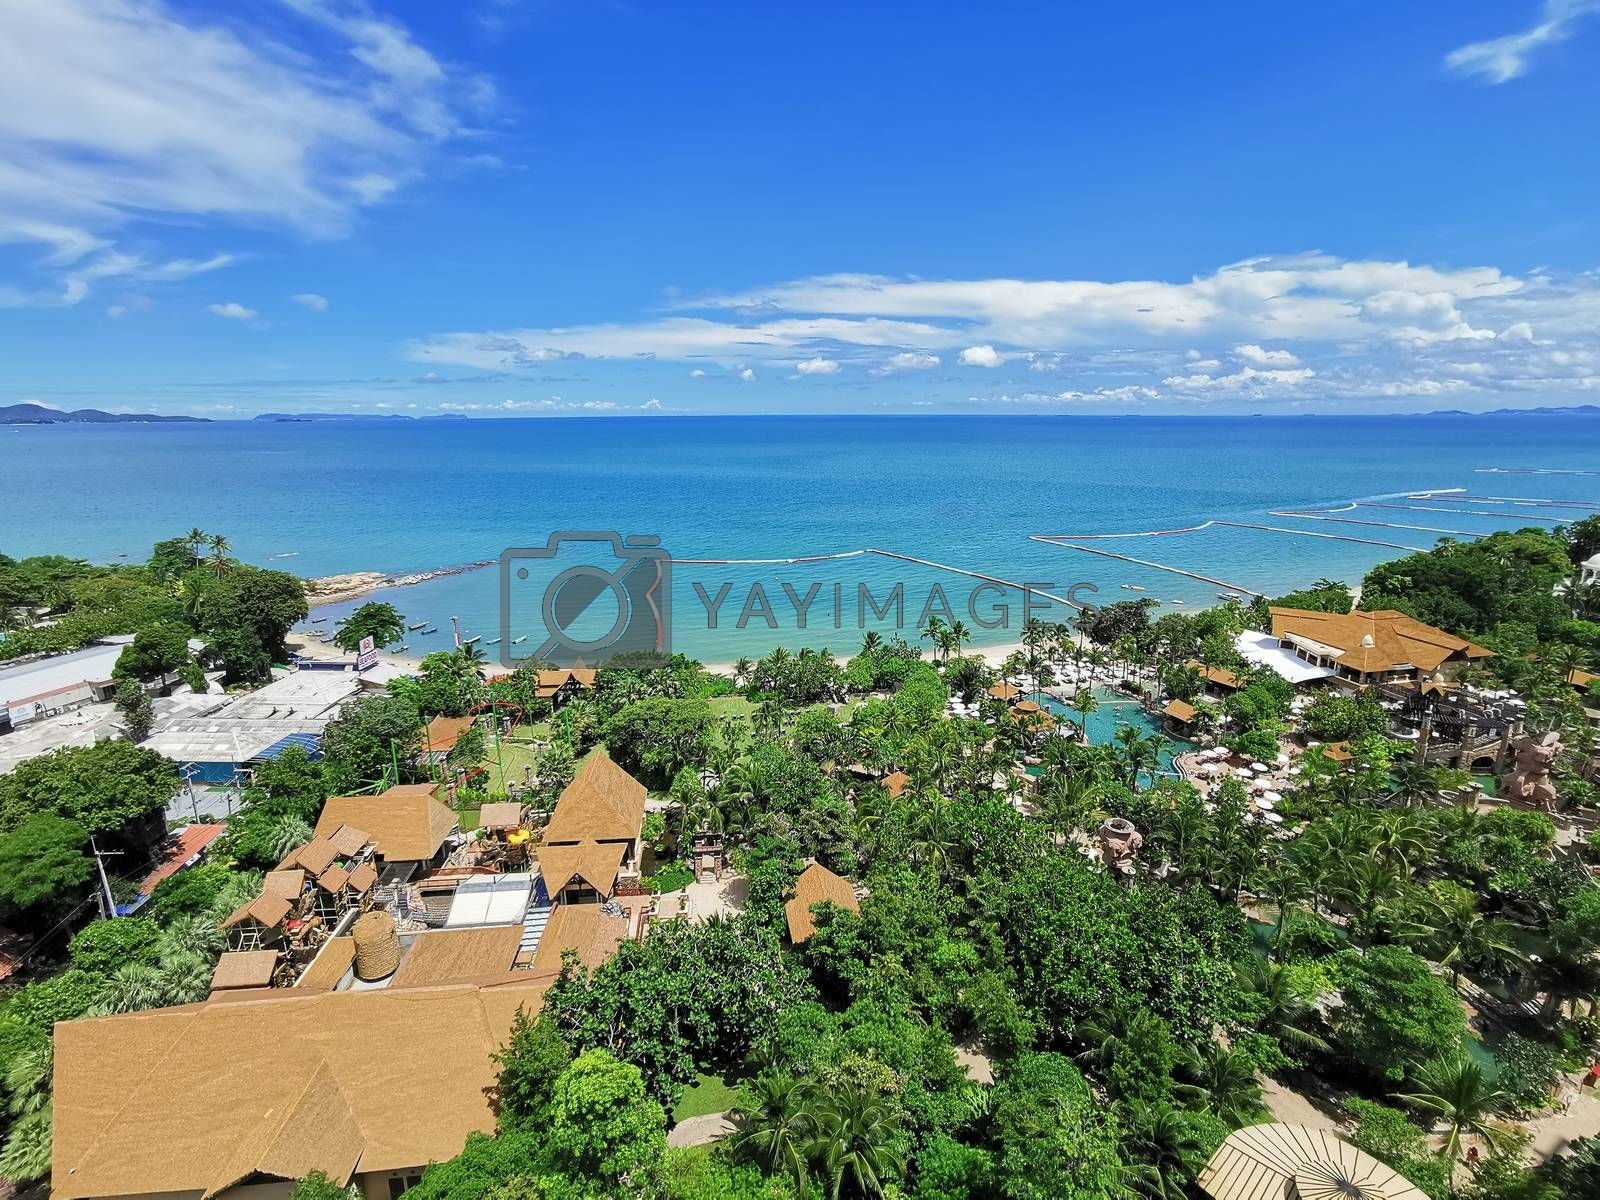 The landscape of beach and Sea view for vacation and summer from high hotel view with blue sky in the morning.